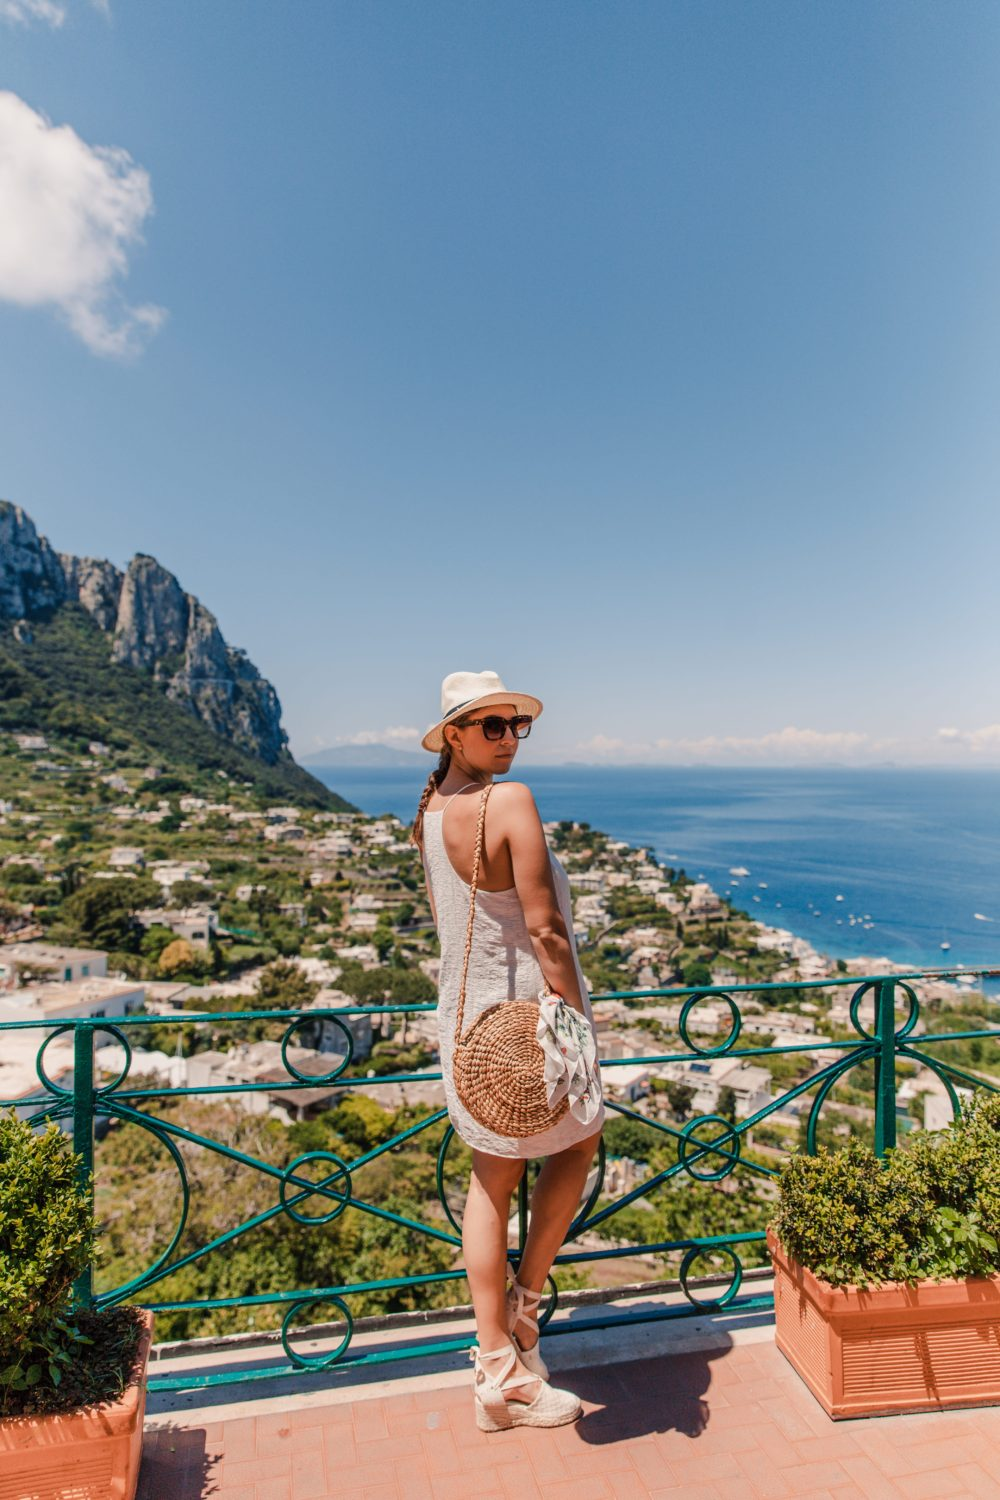 Day Trip to Stunning Capri, Italy | 9 Things You Shouldn't Miss | Dana Berez Travel